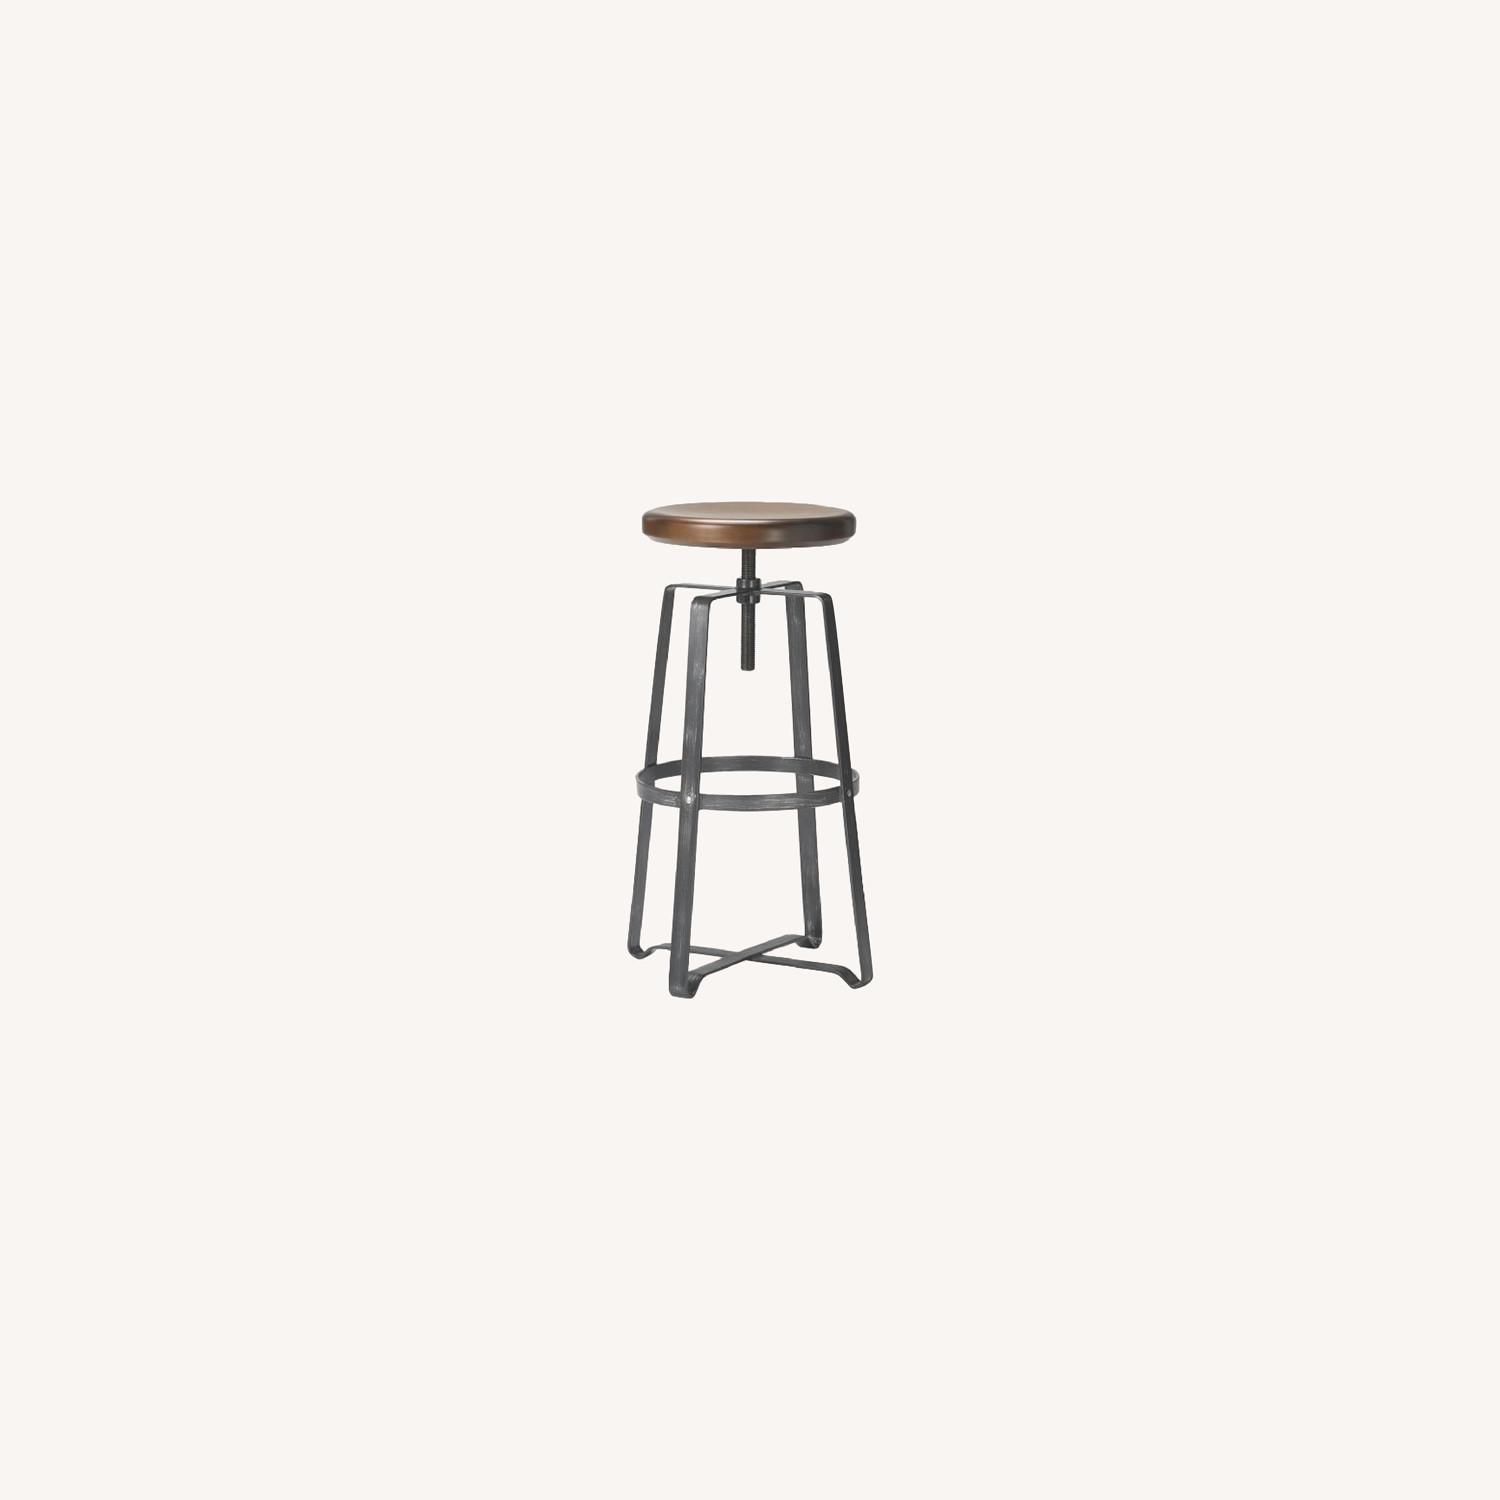 West Elm Adjustable Industrial Wood Counter Stool - image-0